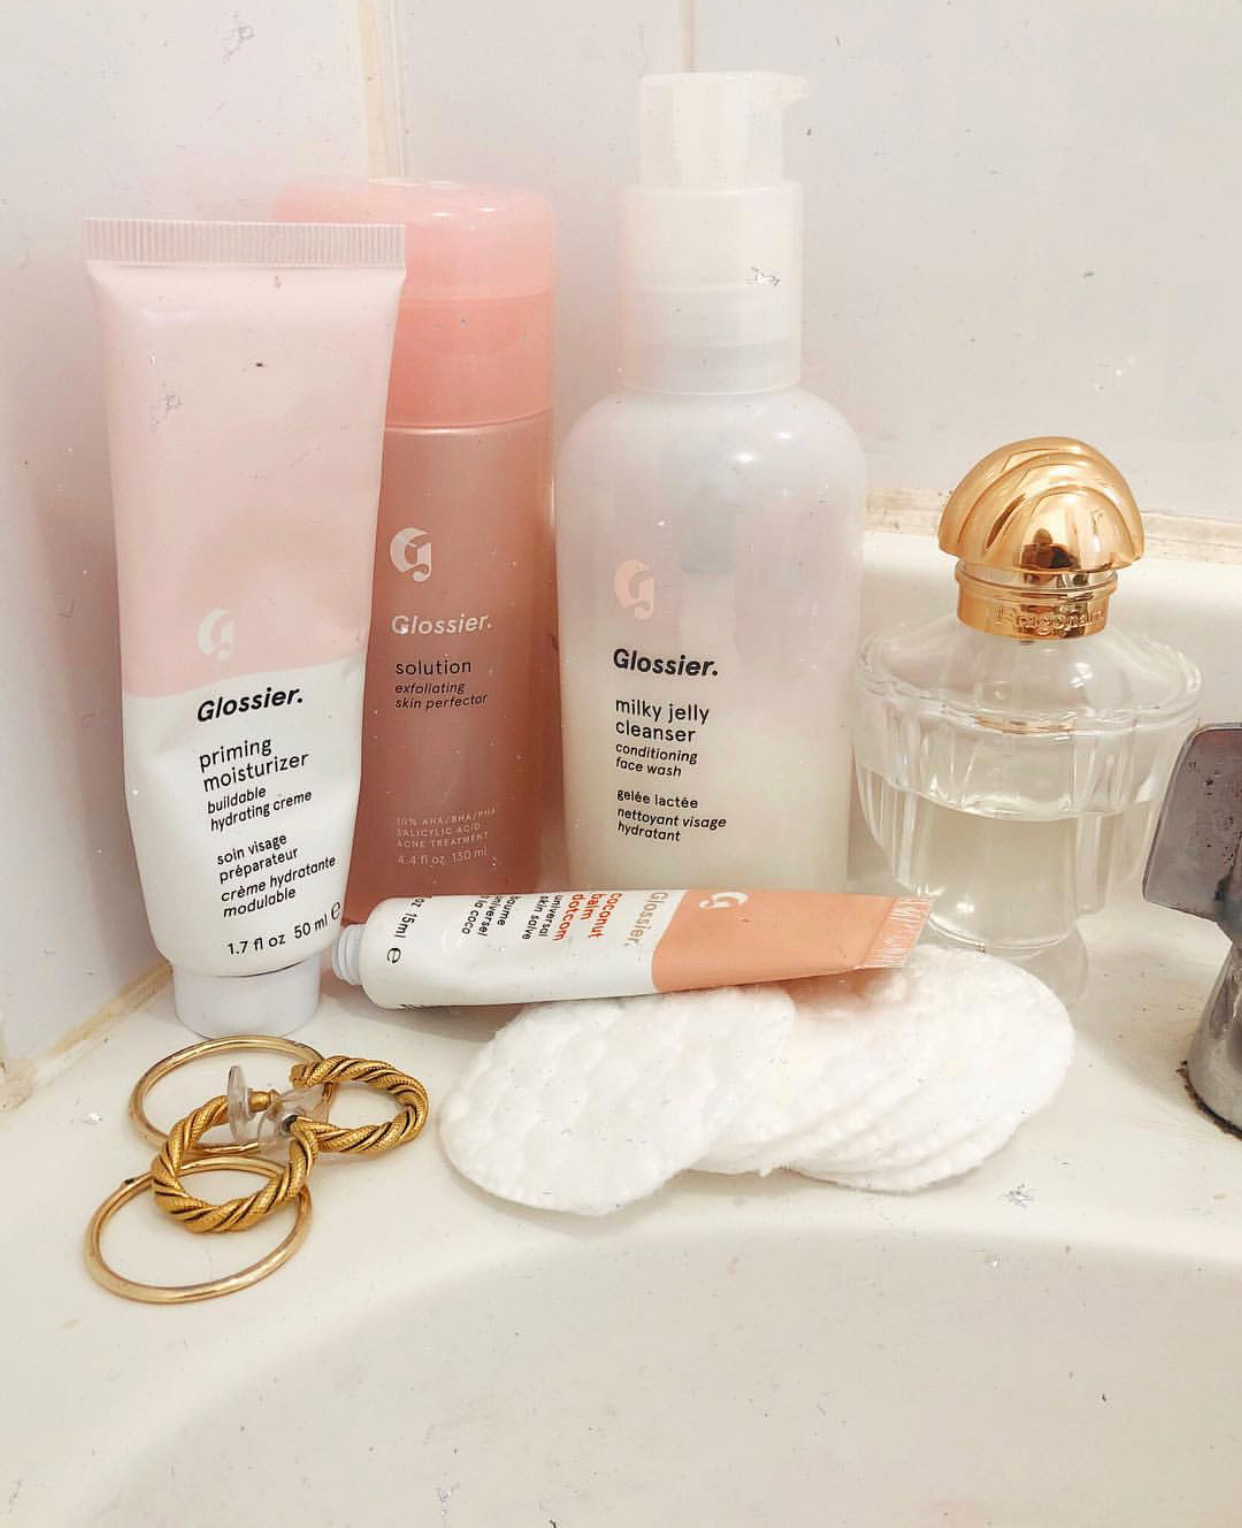 the ultimate guide to glossier, reviews of all glossier products